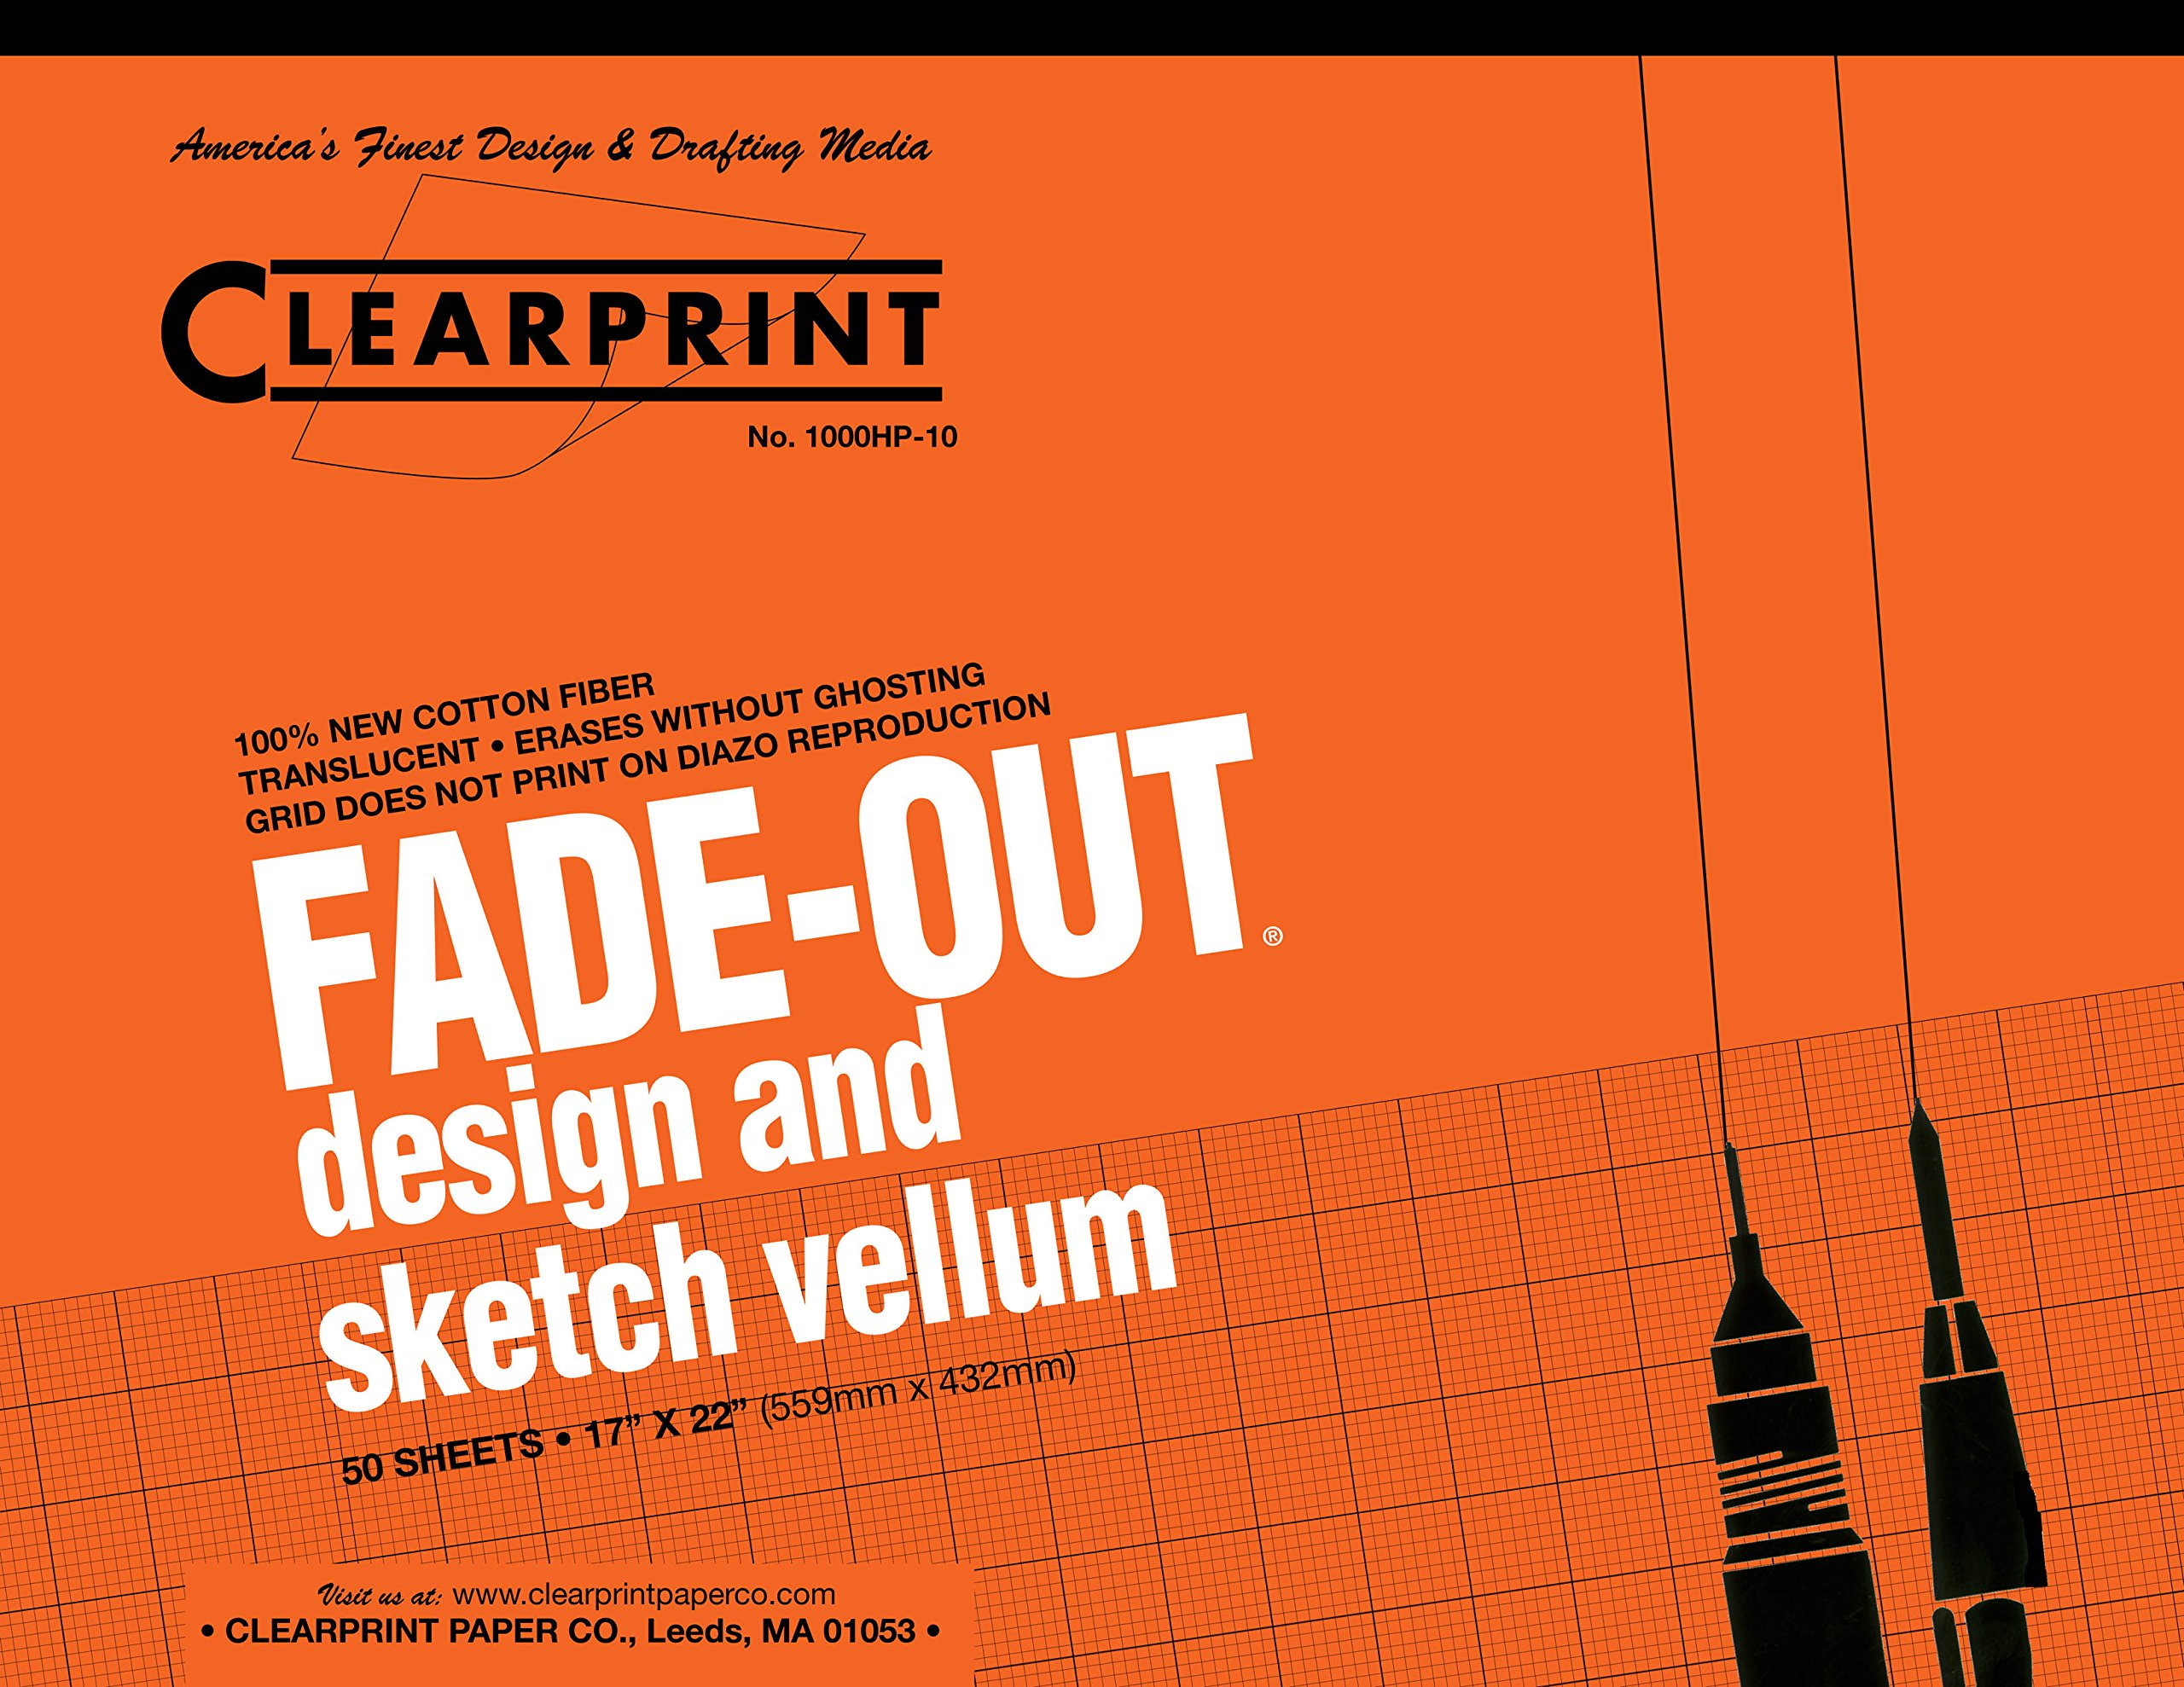 Clearprint 1000H Design Vellum Pad with Printed Fade-Out 10x10 Grid, 16 lb., 100% Cotton, 17 x 22 Inches, 50 Sheets, Translucent White (10003420)